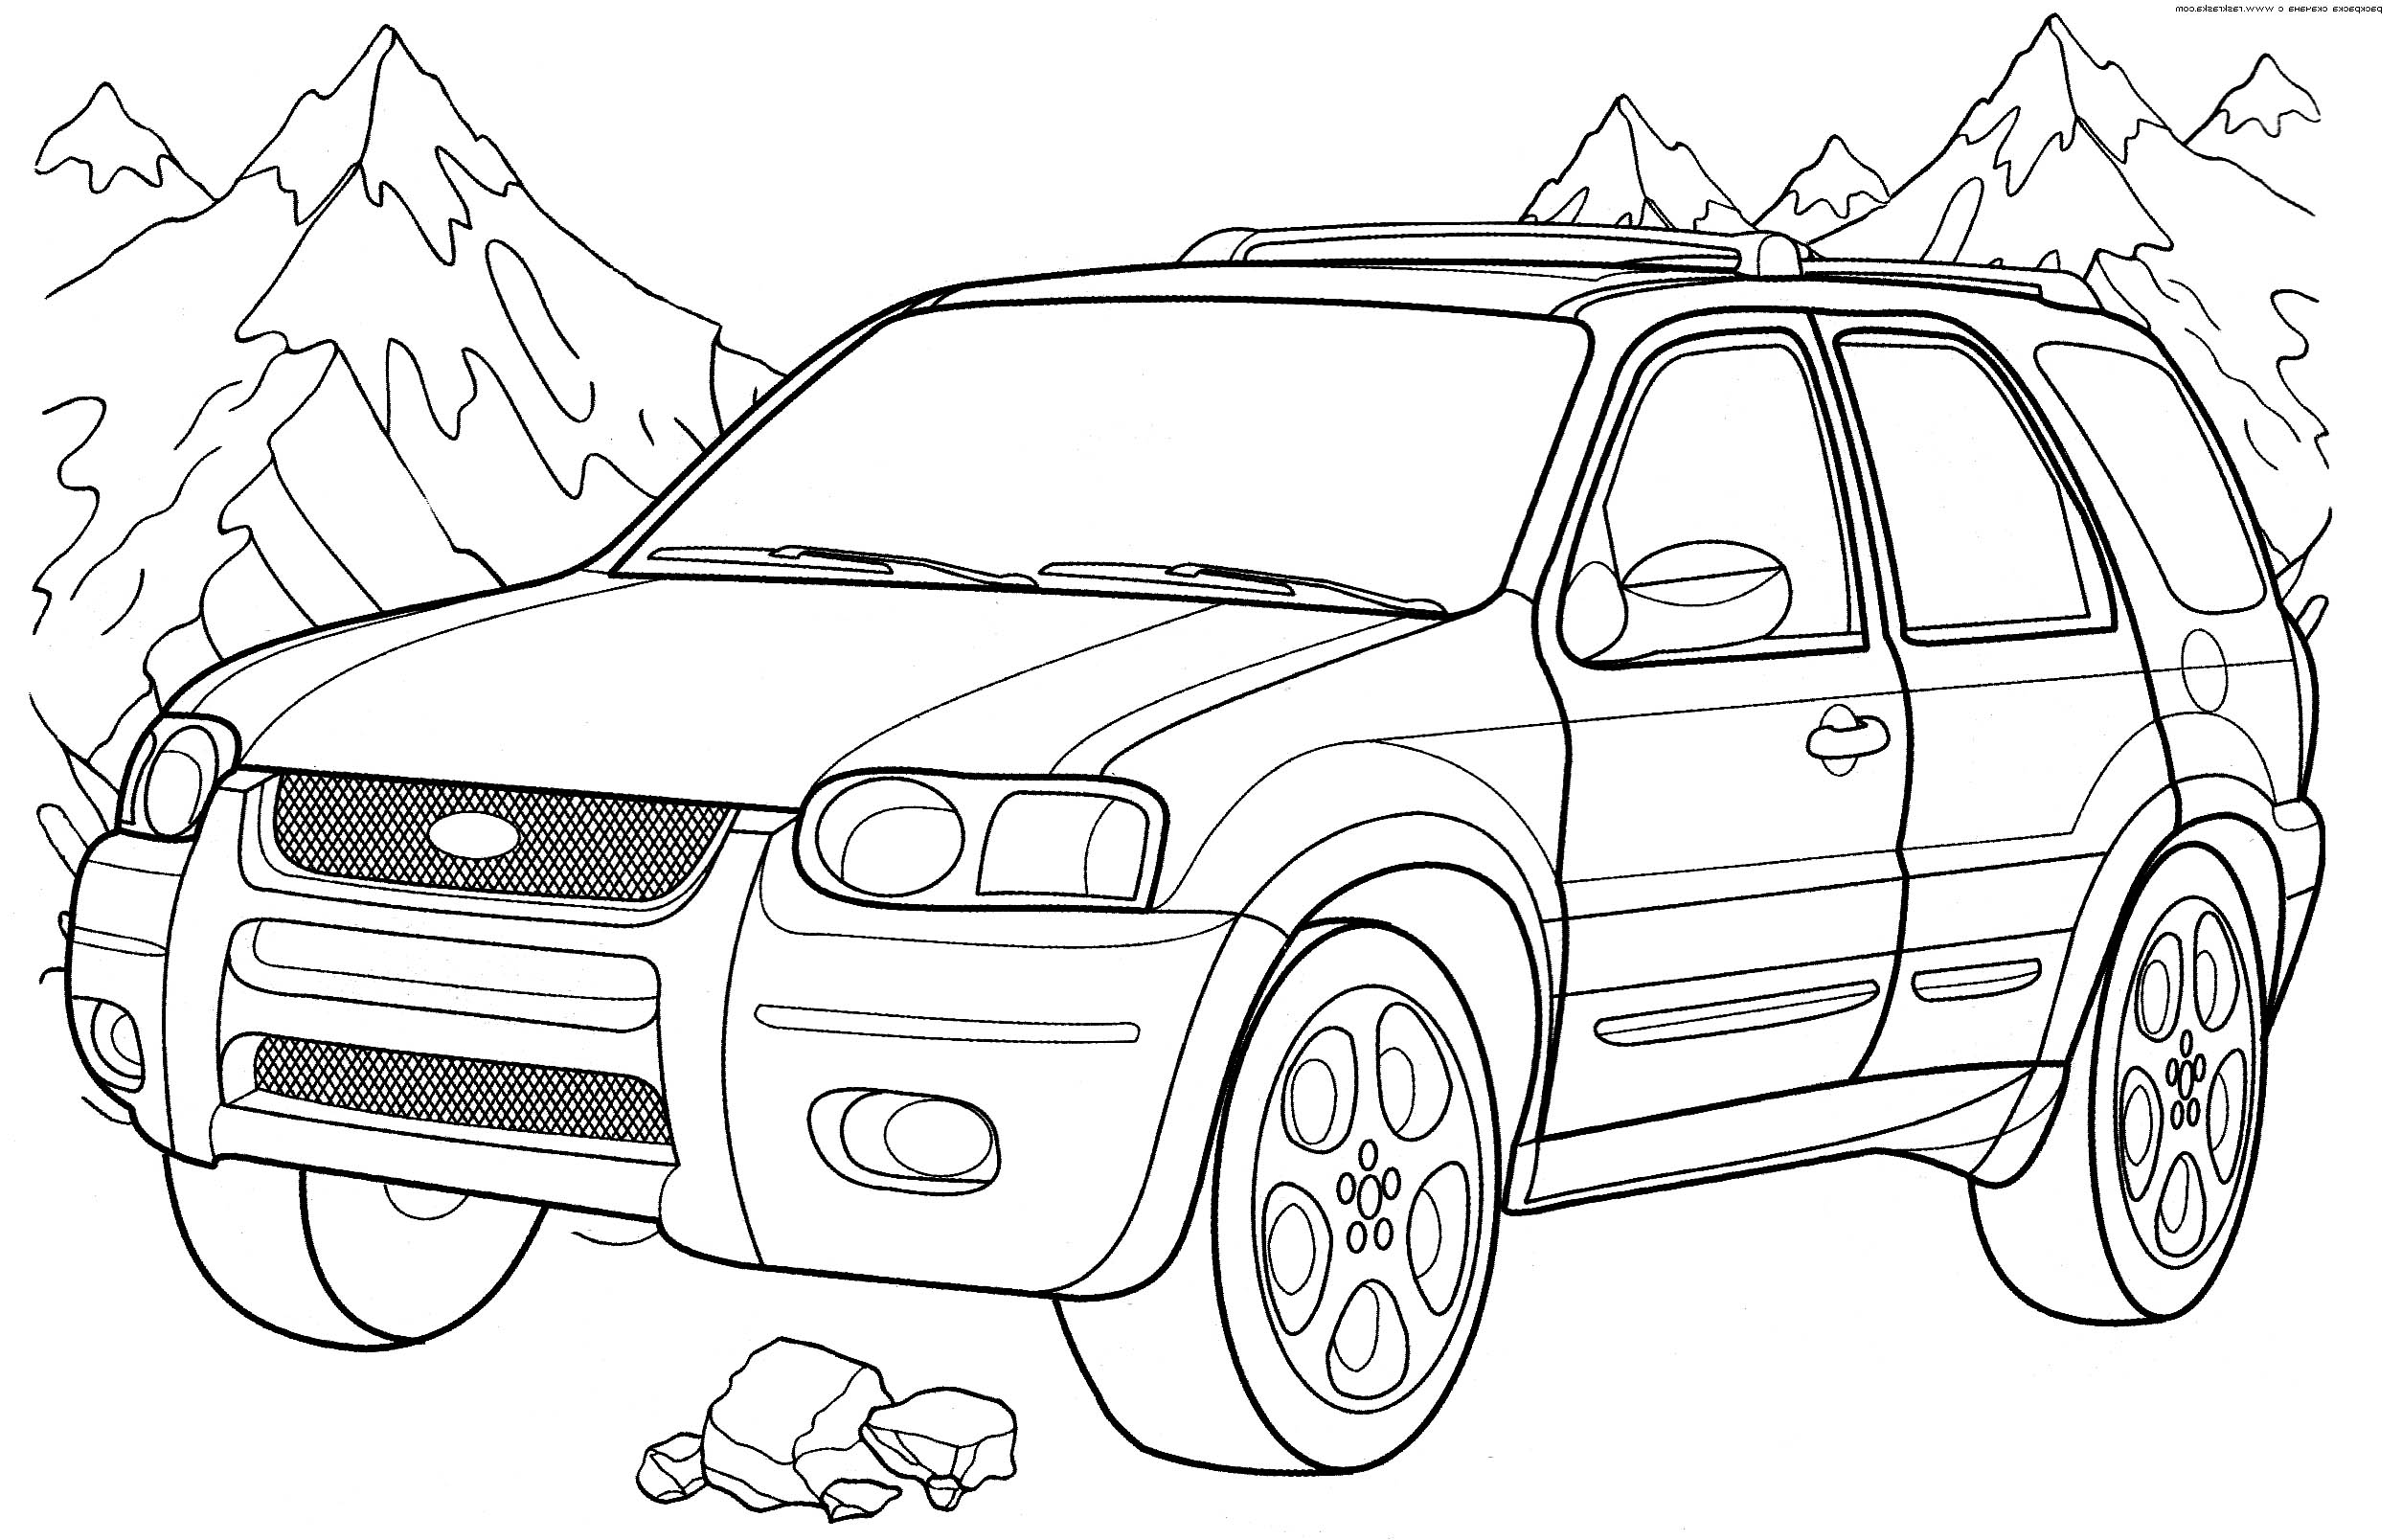 ford coloring pages ford coloring pages to download and print for free coloring ford pages